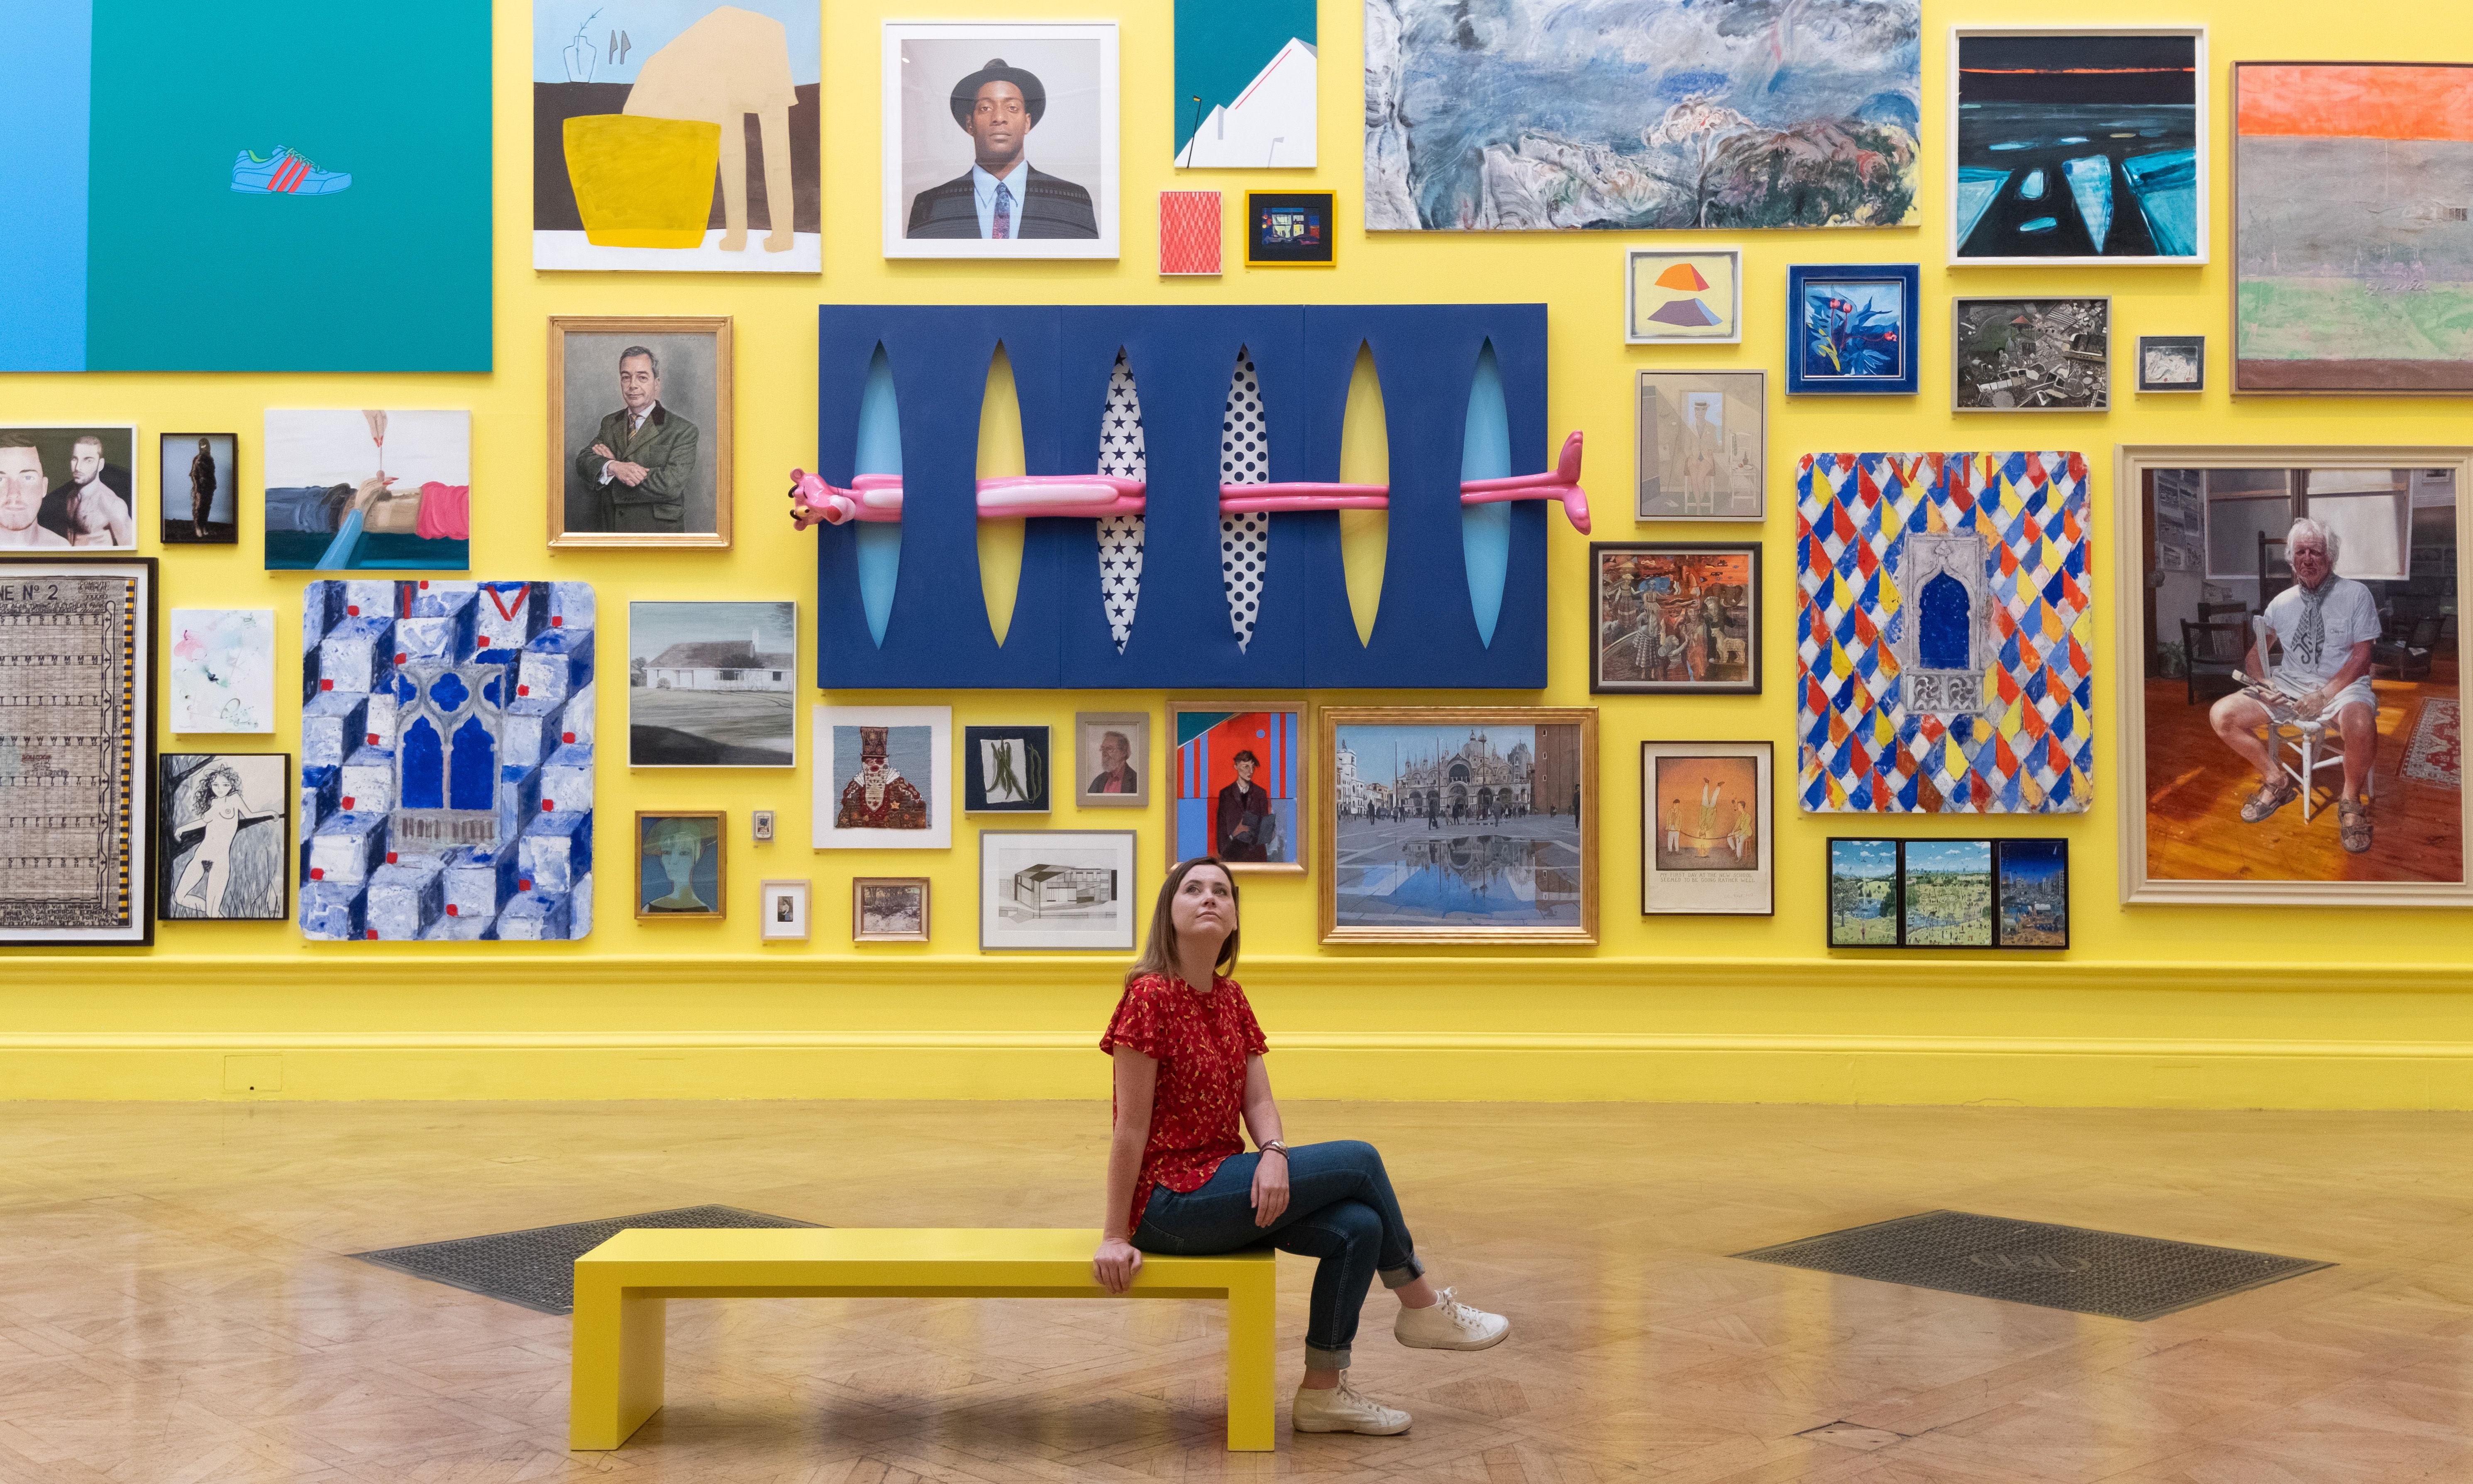 Forget yoga, under-30s use museums and galleries to de-stress